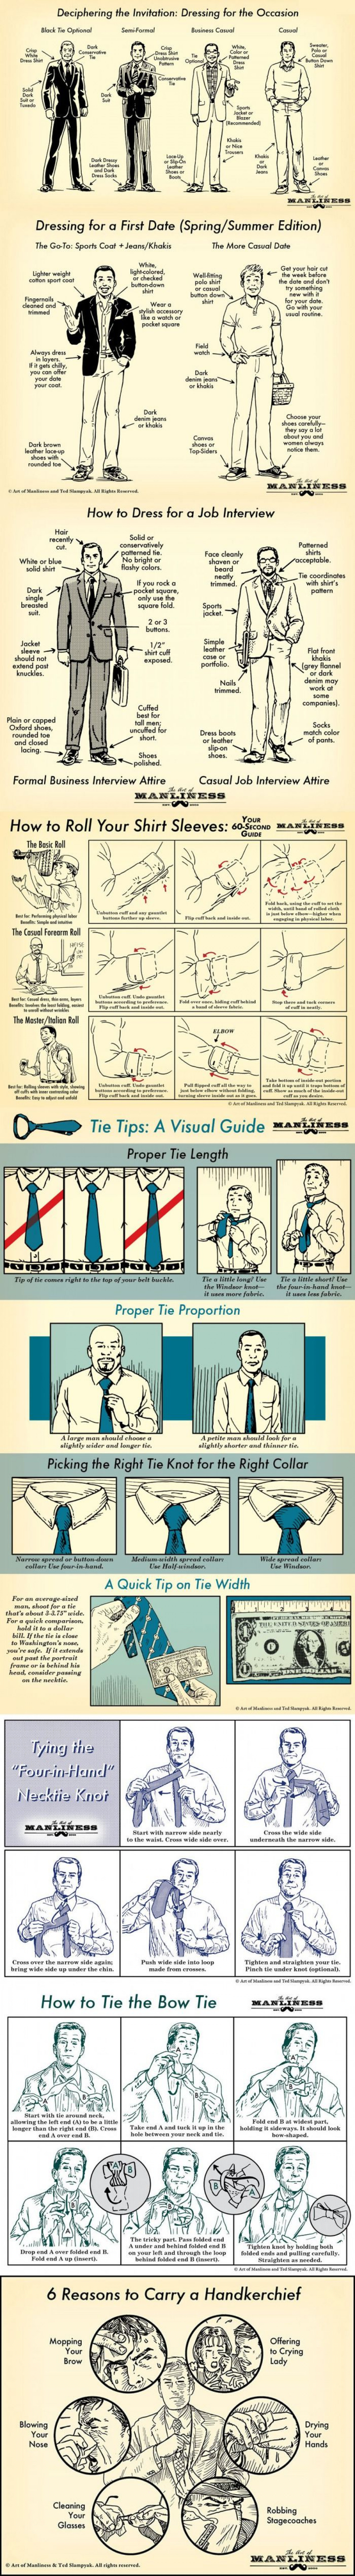 How to Dress like a man Infographic